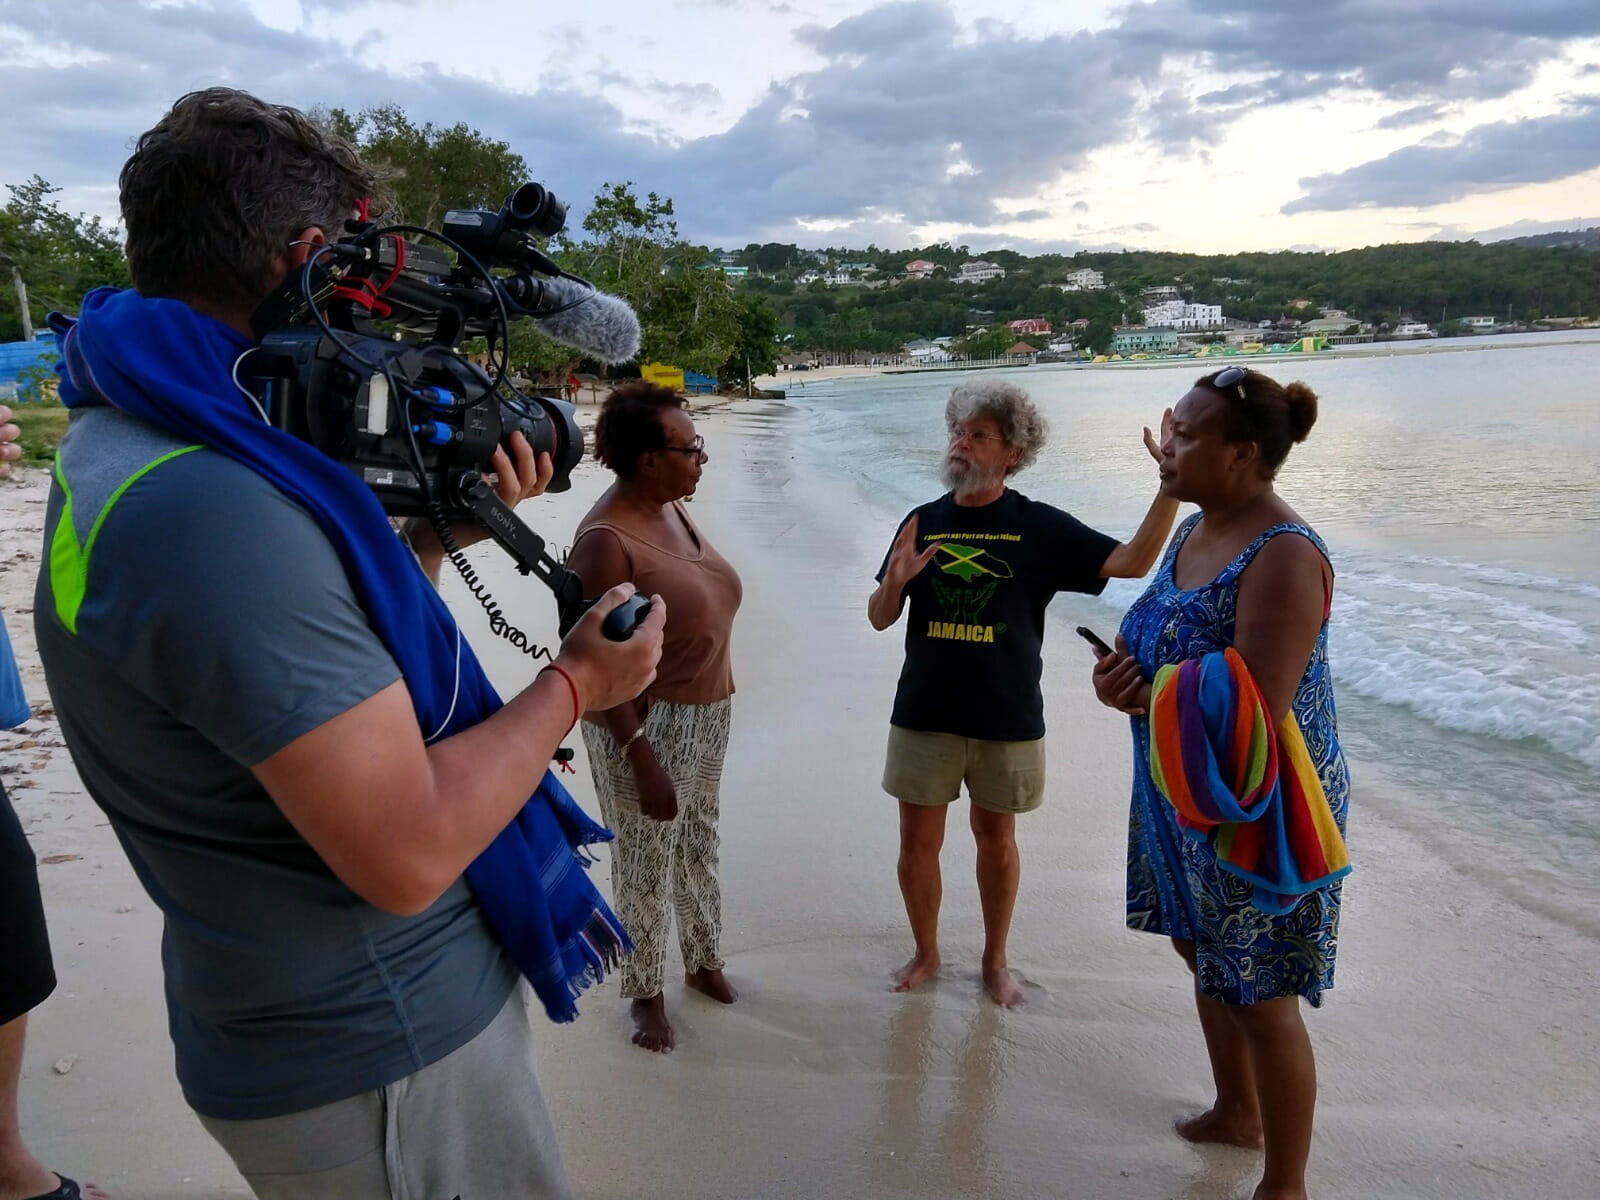 Goreau discussing dolphin pen pollution issues with local residents in Discovery Bay